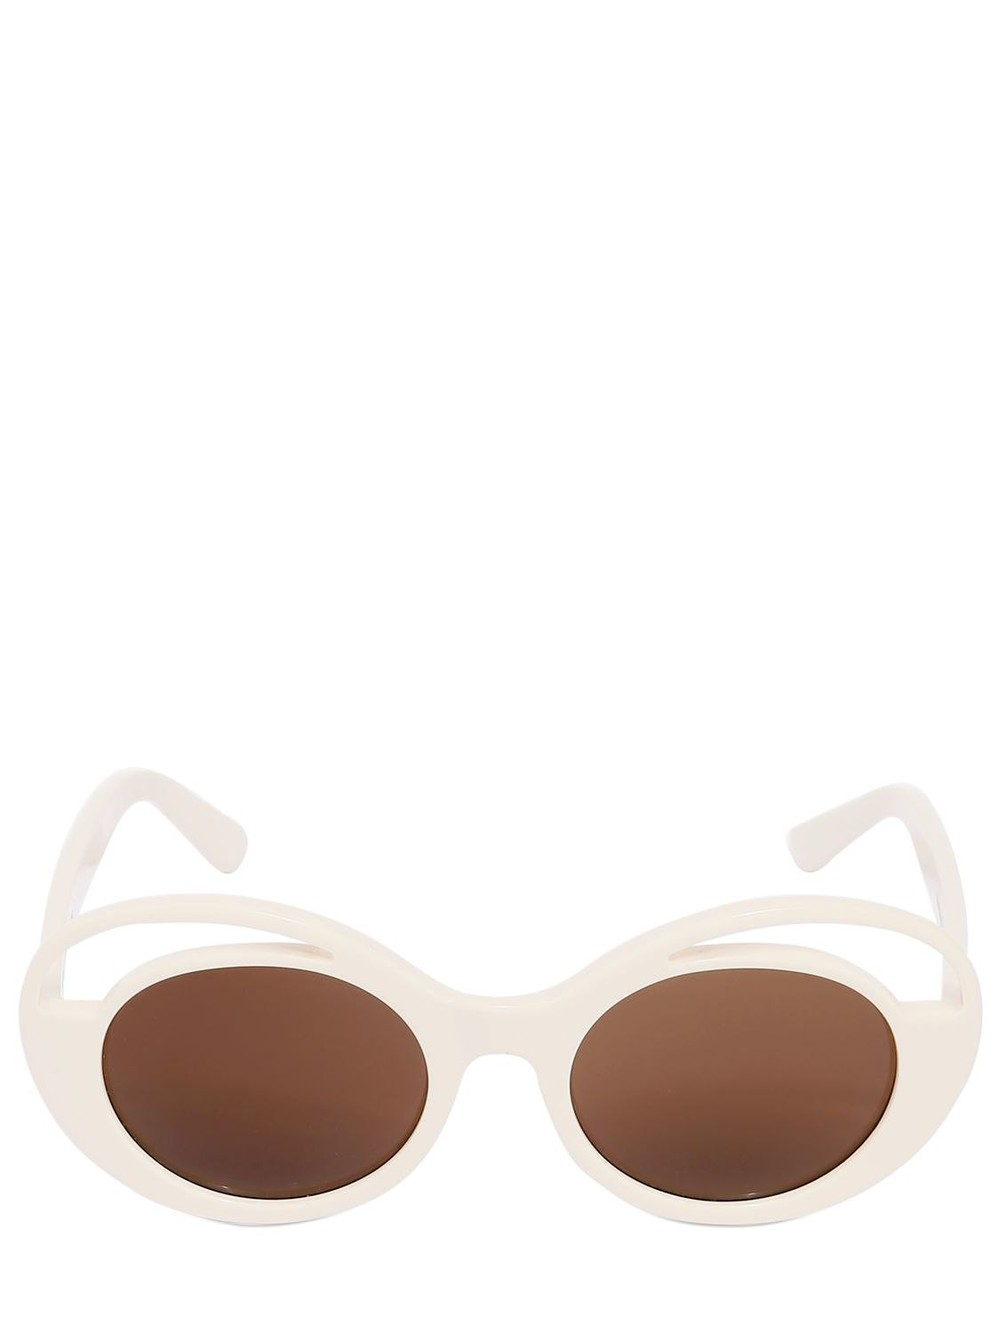 KYME Round Acetate Sunglasses in brown / white